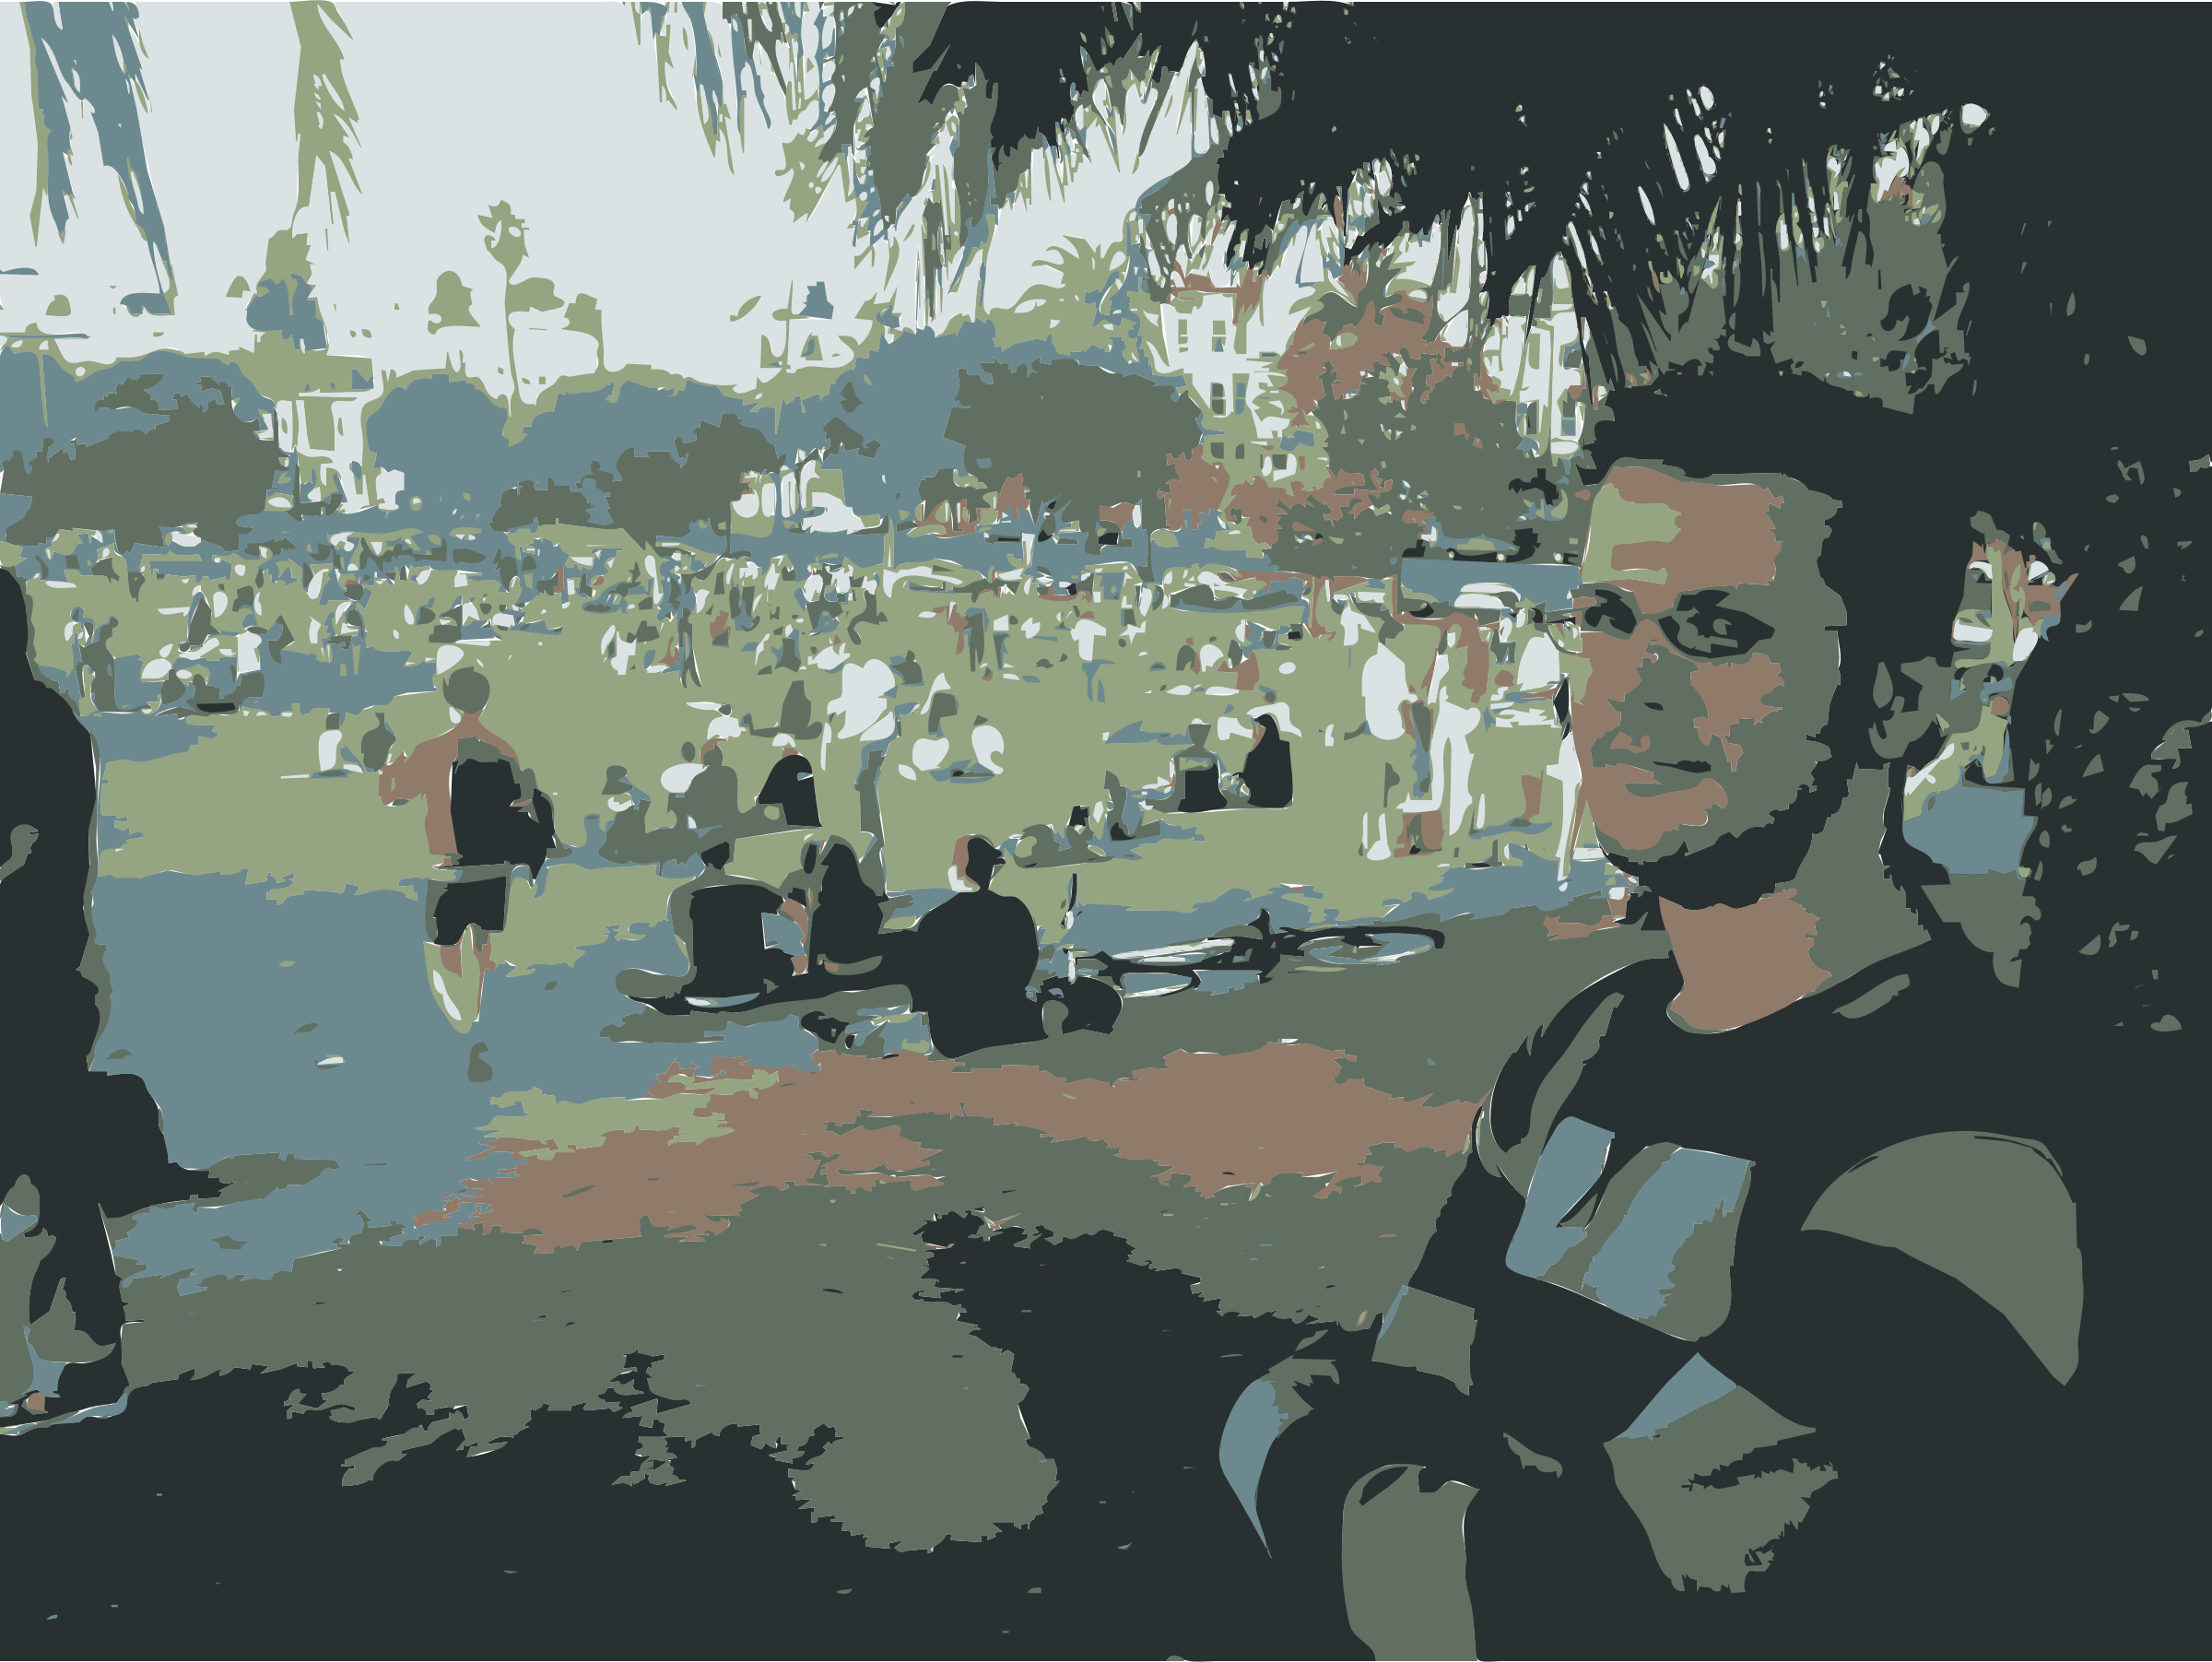 Nicky Bourque in Dolores Park San Francisco by rejon